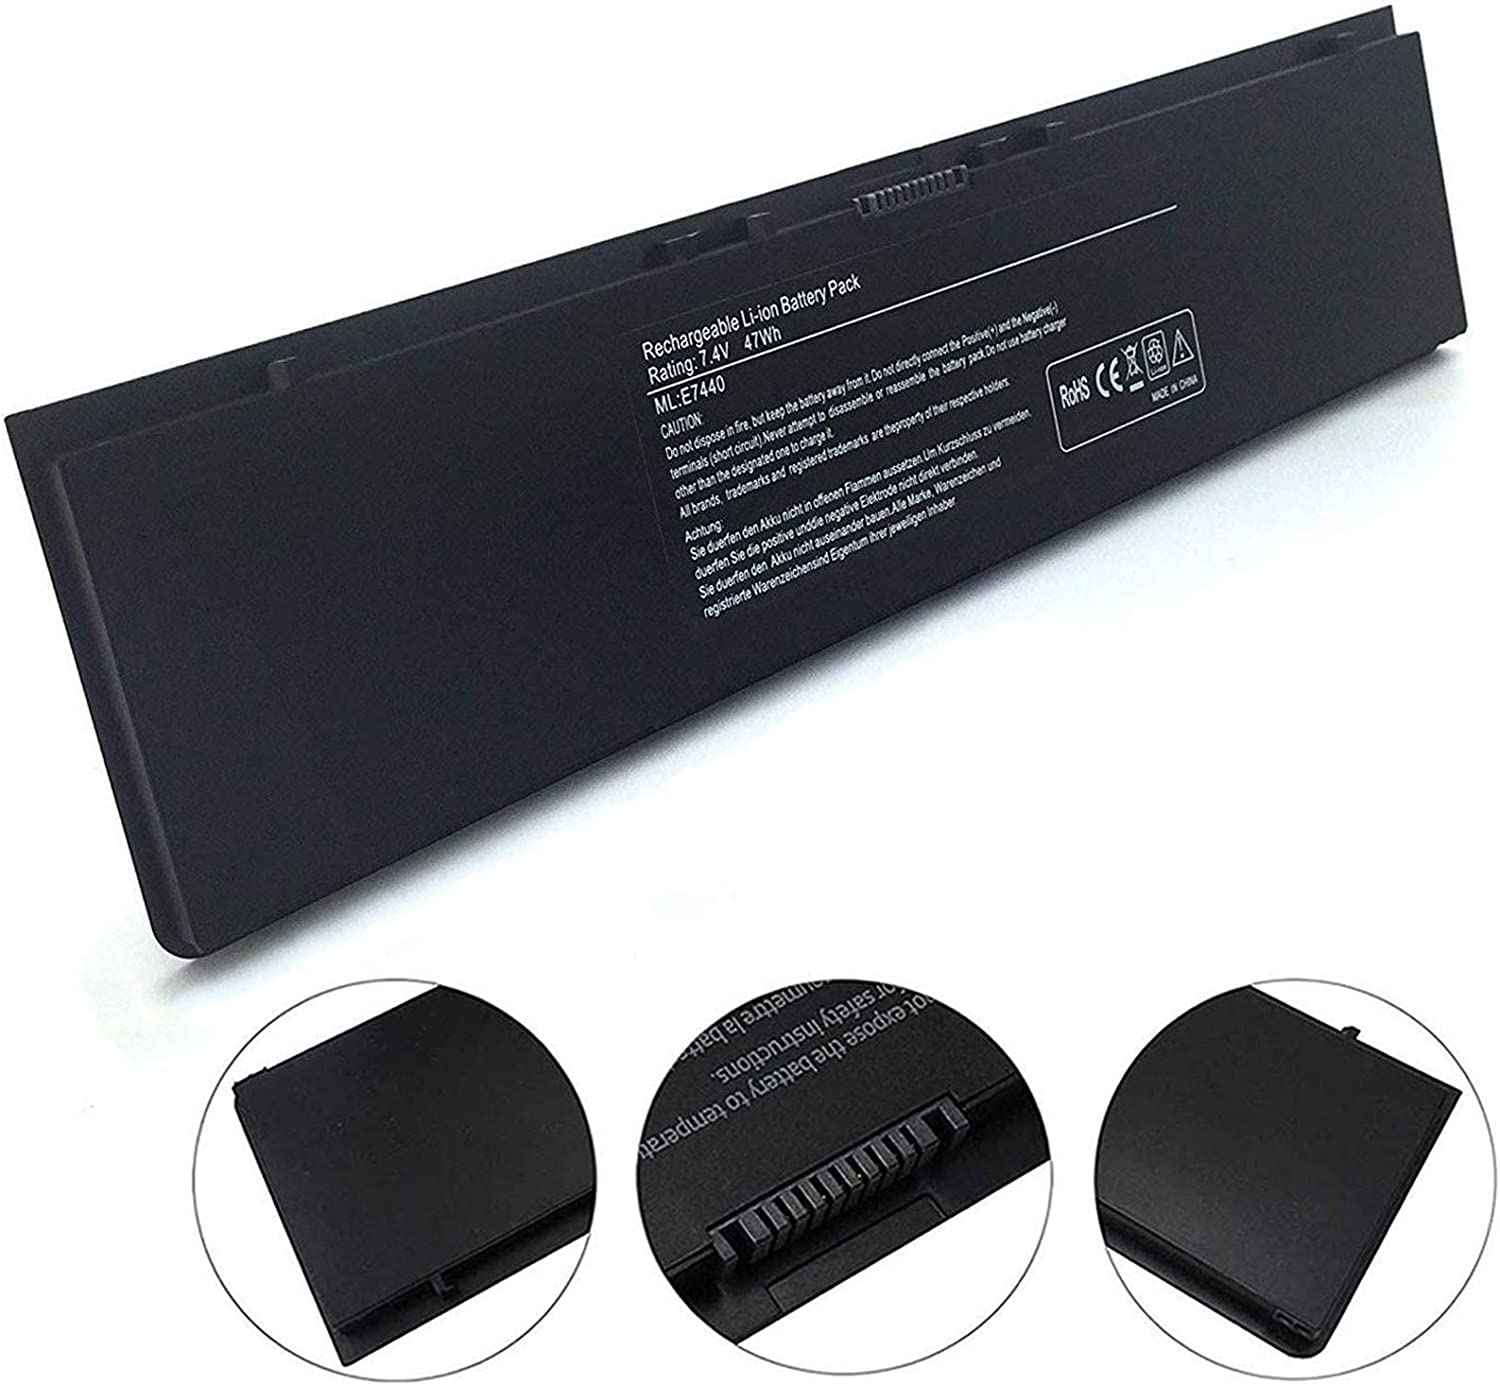 E7440 Laptop Battery Compatible with Dell Latitude E7450 E7420 E225846 Series 34GKR 3RNFD PFXCR F38HT T19VW G95J5,0G95J5 5K1GW [7.4V 47WH Black]-18 Months Warranty